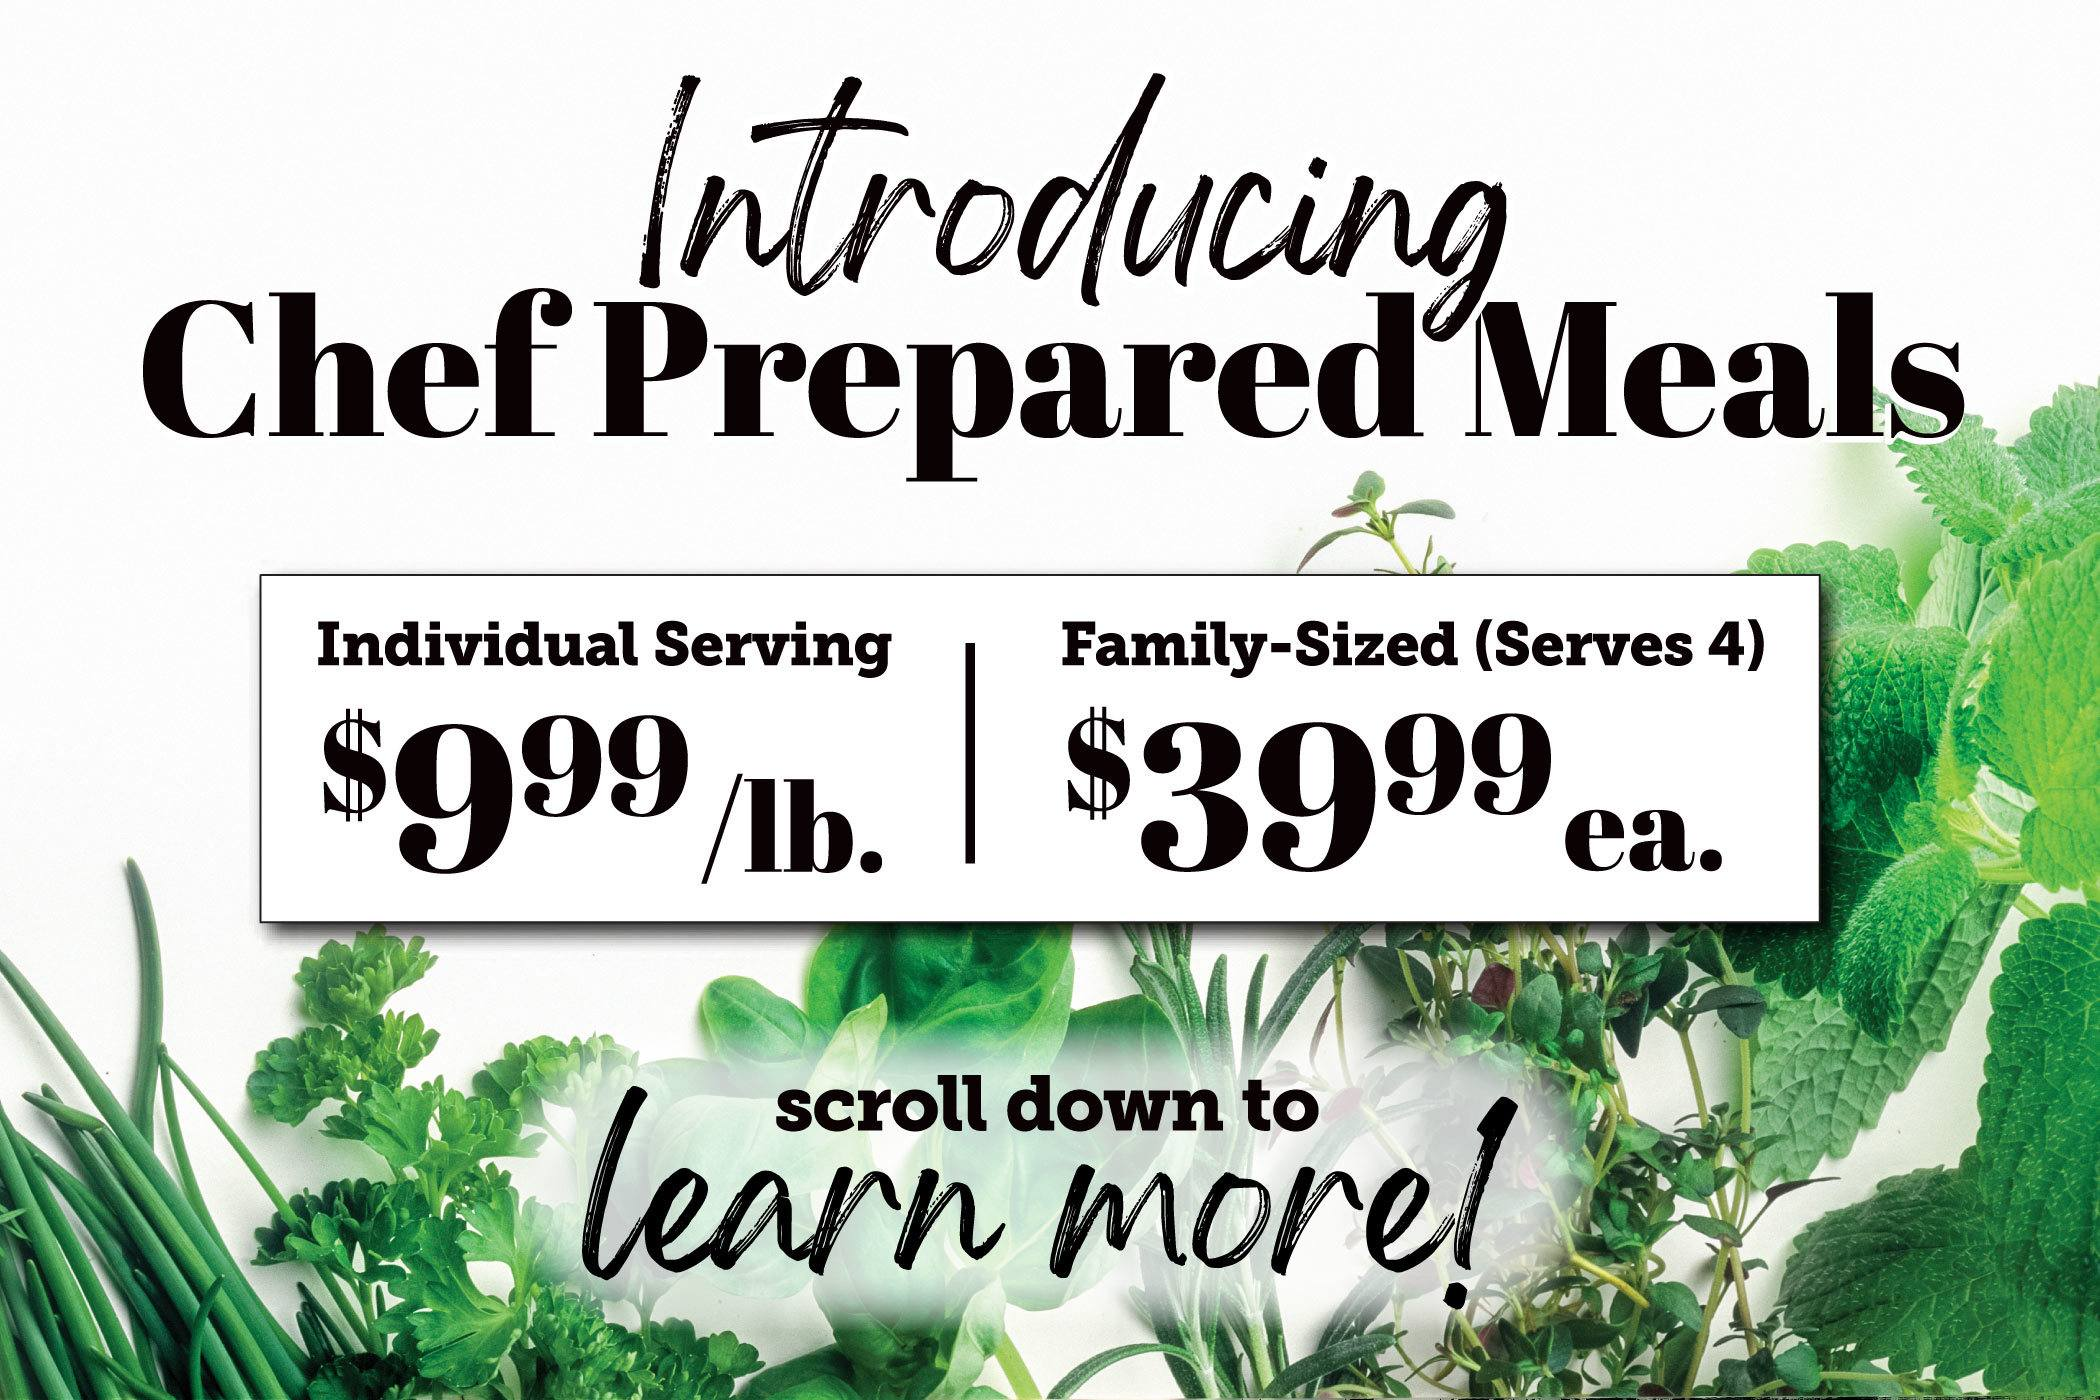 Introducing Oliver's Market Chef Prepared Meals. Individual Servings $9.99 per pound. Family Sized Serving for 4 $39.99 each. Scroll down to learn more.